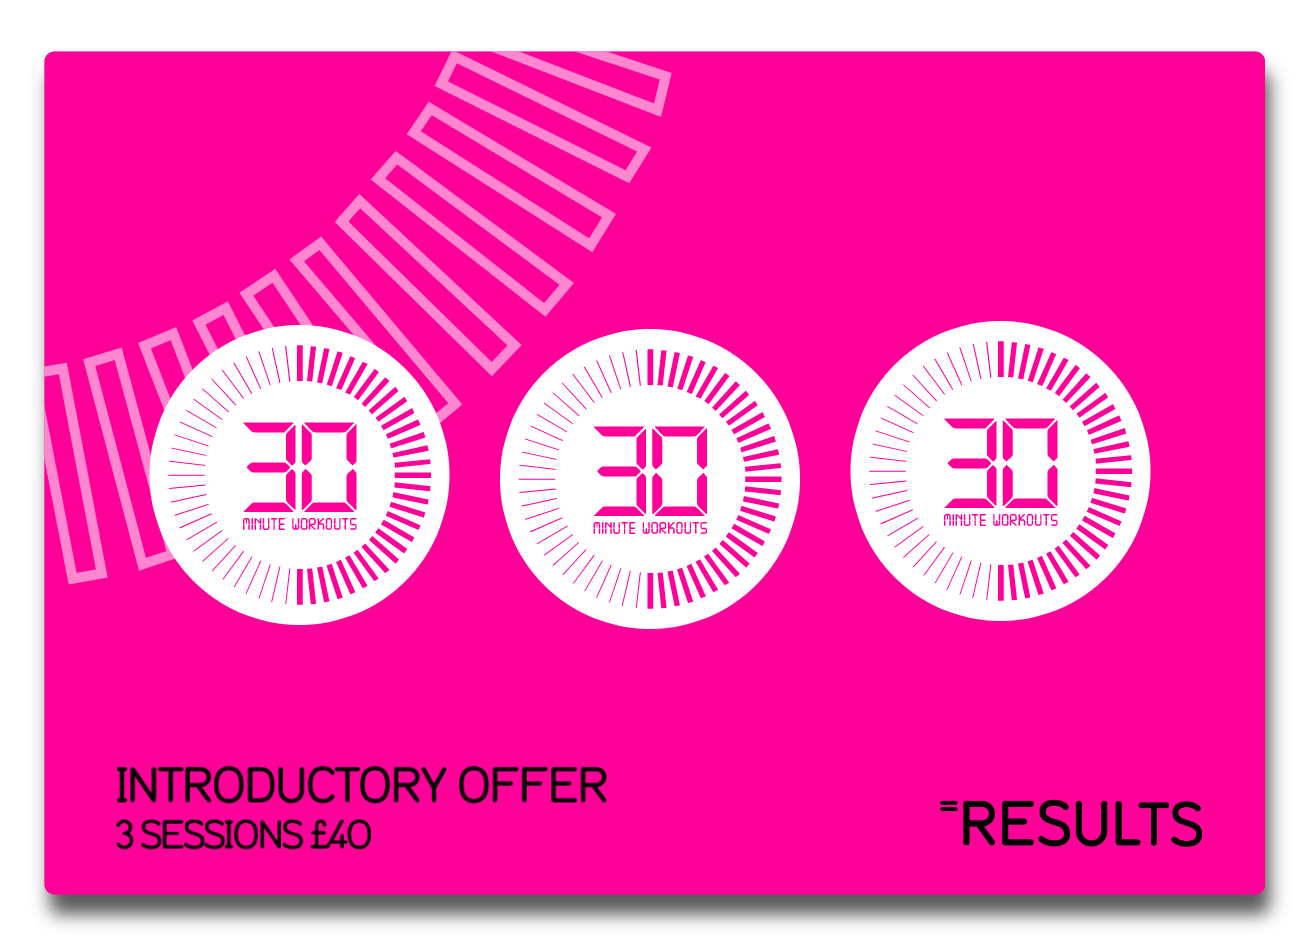 New to Results? - Get to know us with our introductory offer.